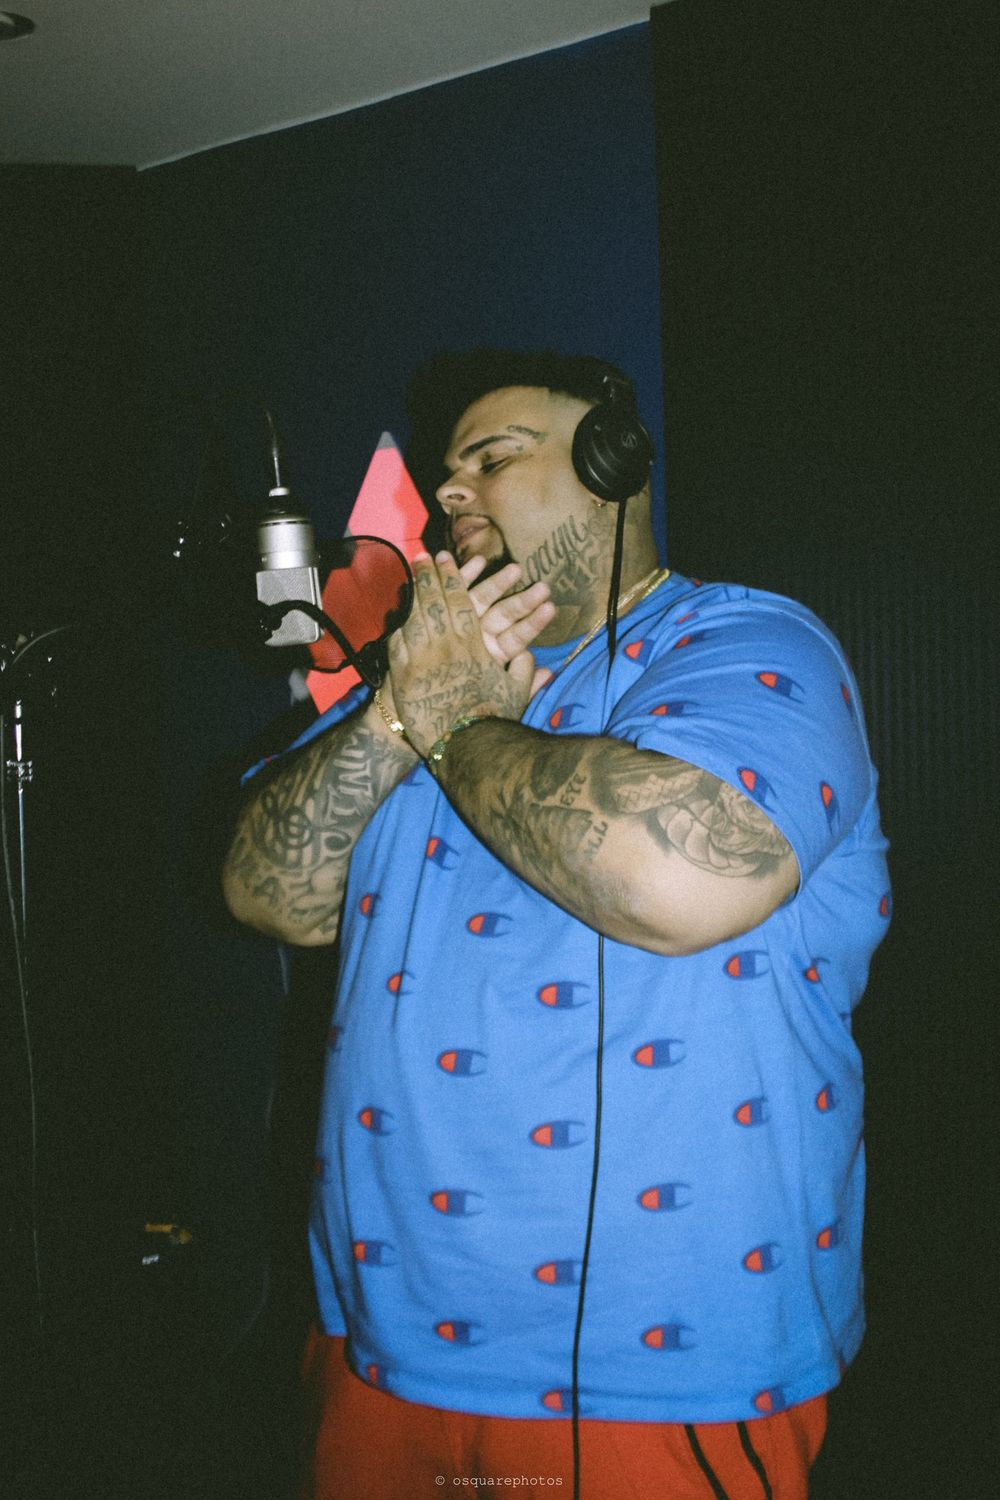 rapper in the booth